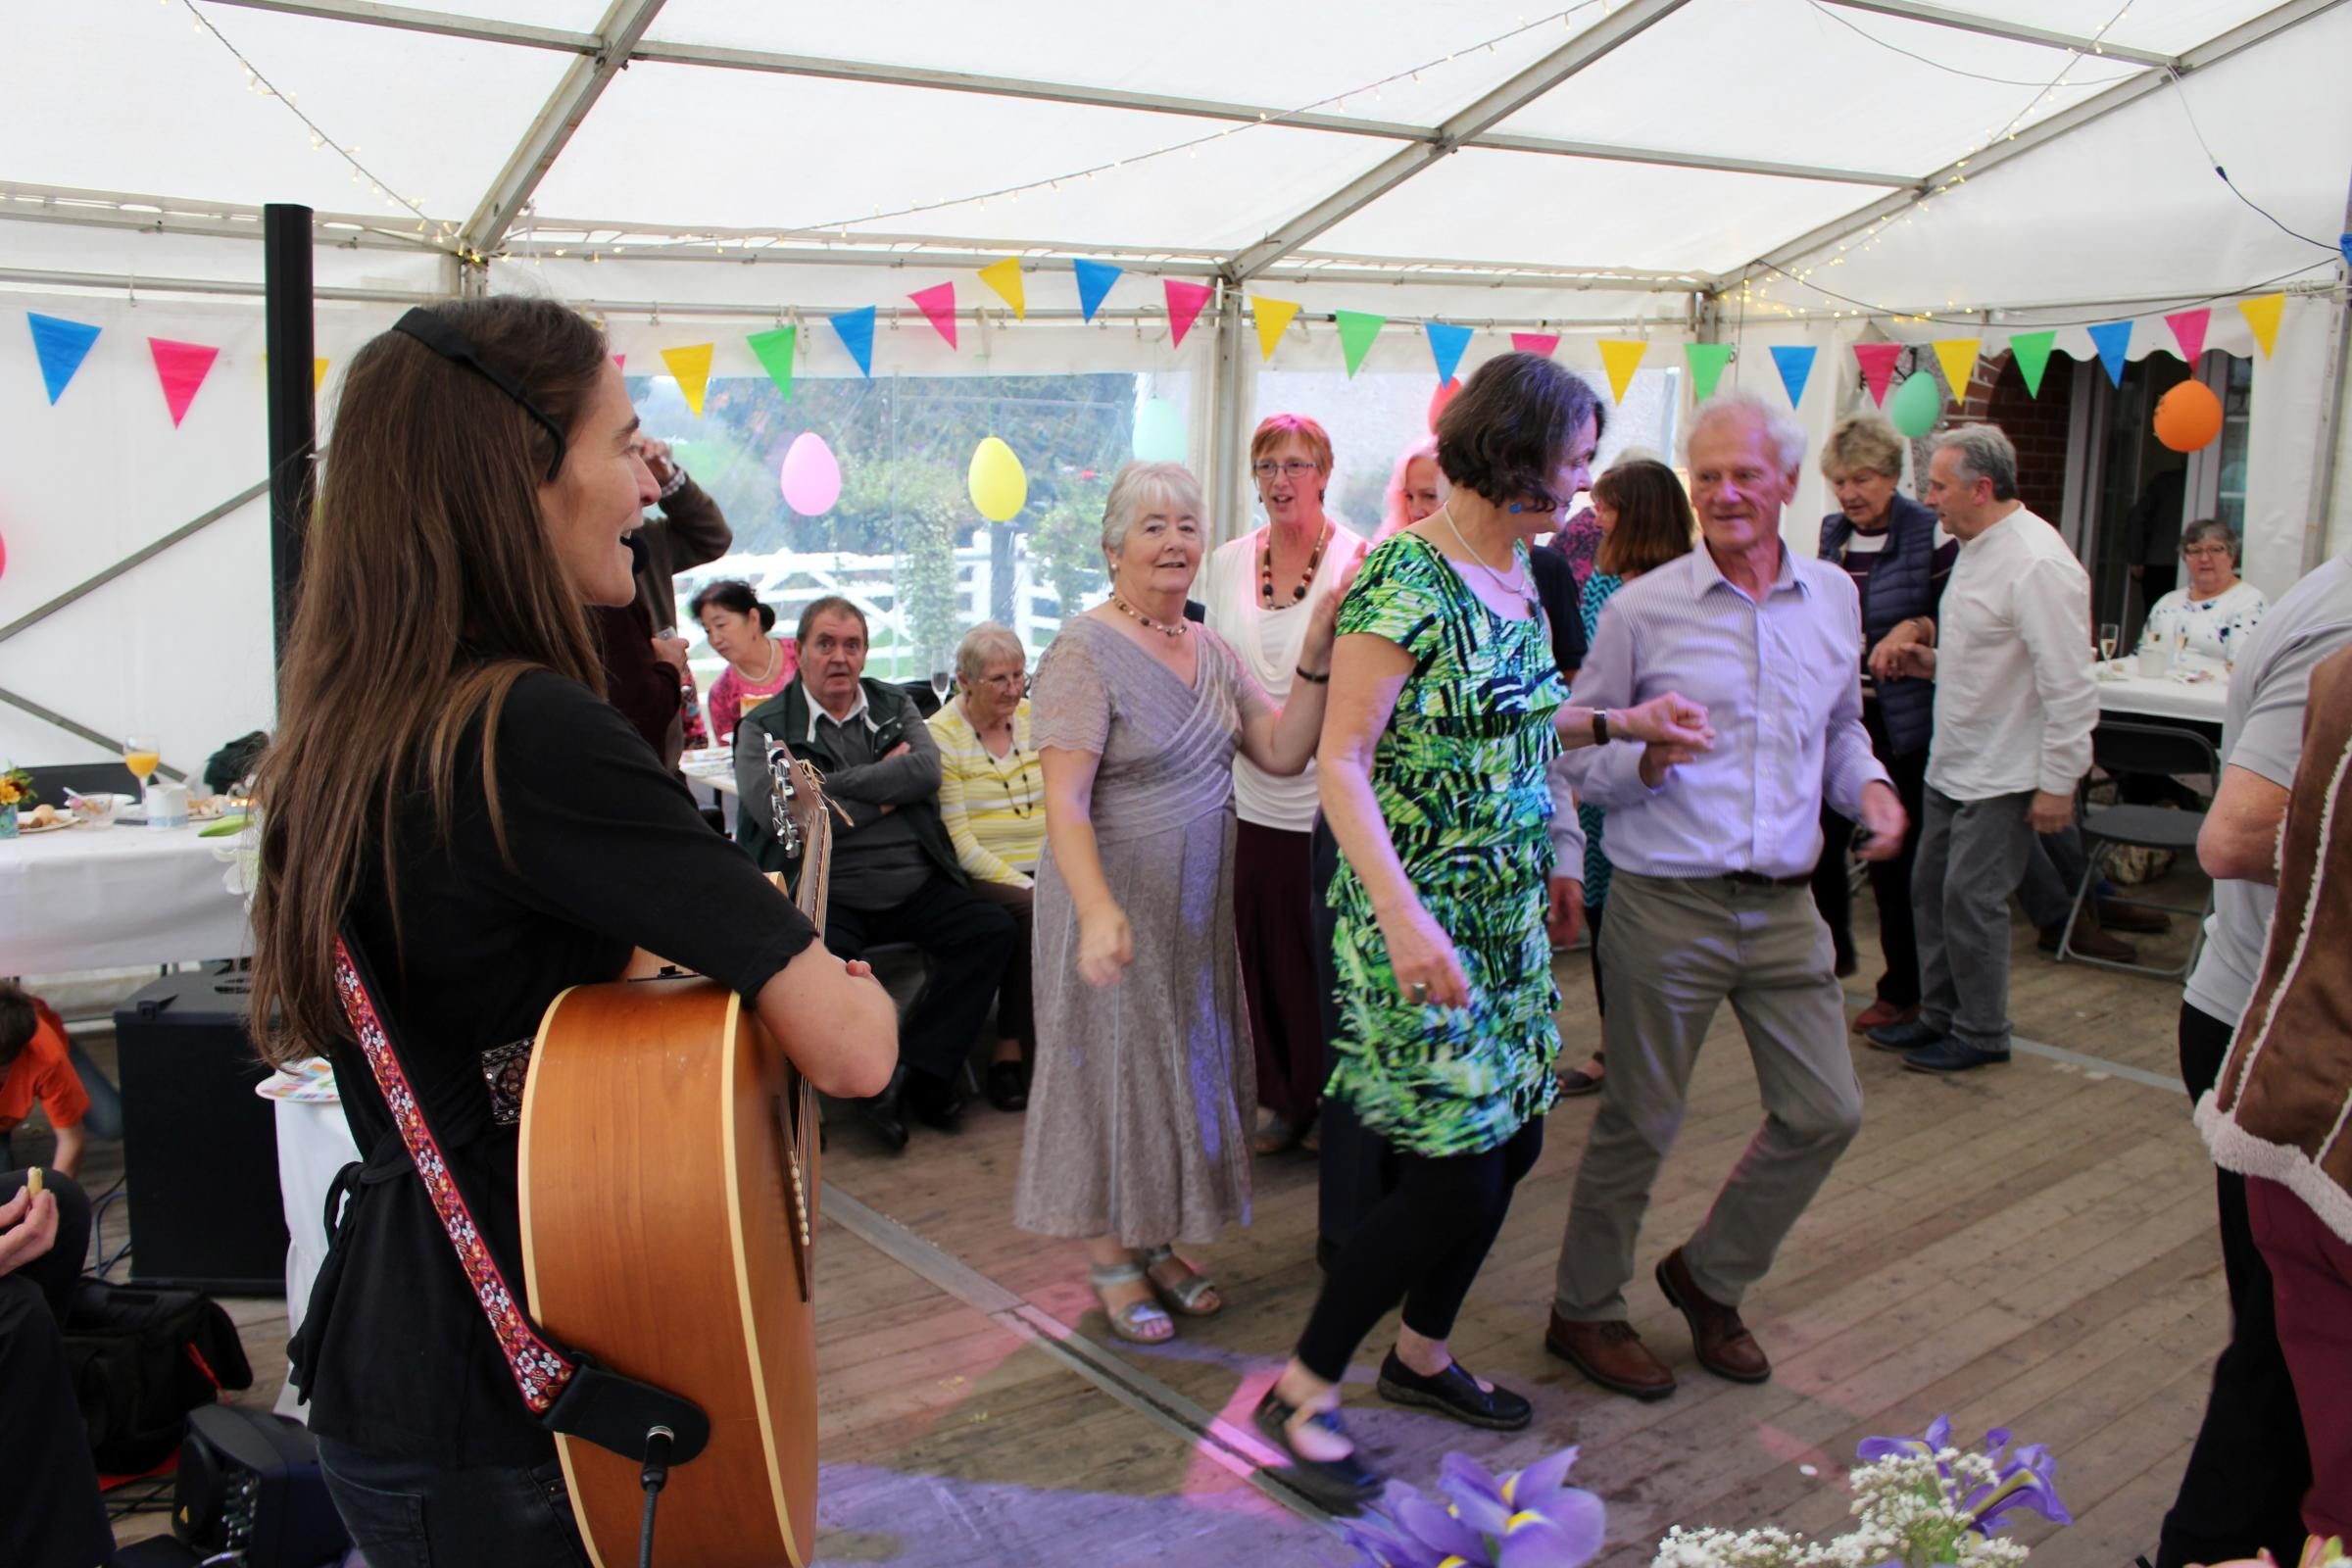 Celebrations at Geoff Evans' 80th birthday. PICTURE: Nick Pudsey, Pembrokeshire Video Productions.